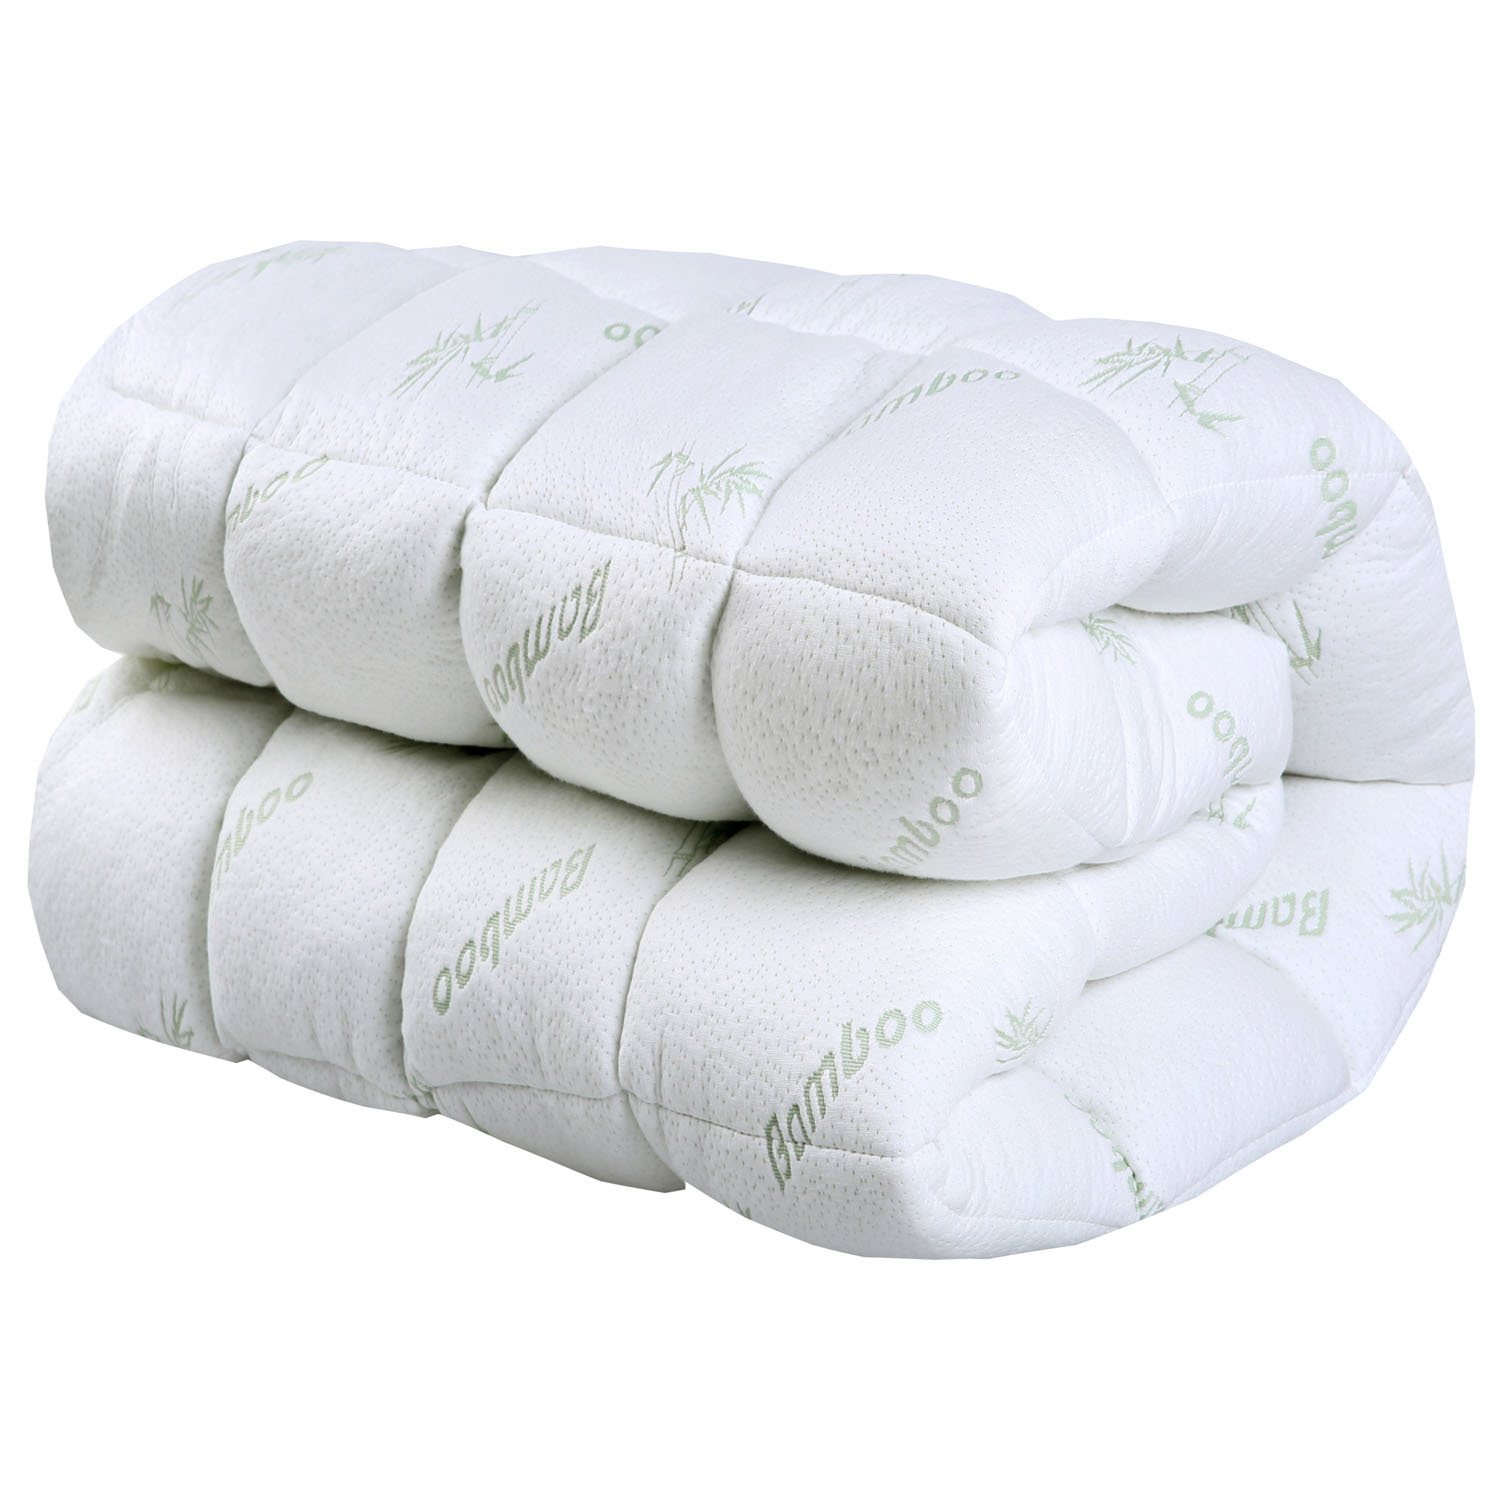 pt pillowtop pad mattress ec egg parent protector bedding giselle crate bamboo itm topper cotton